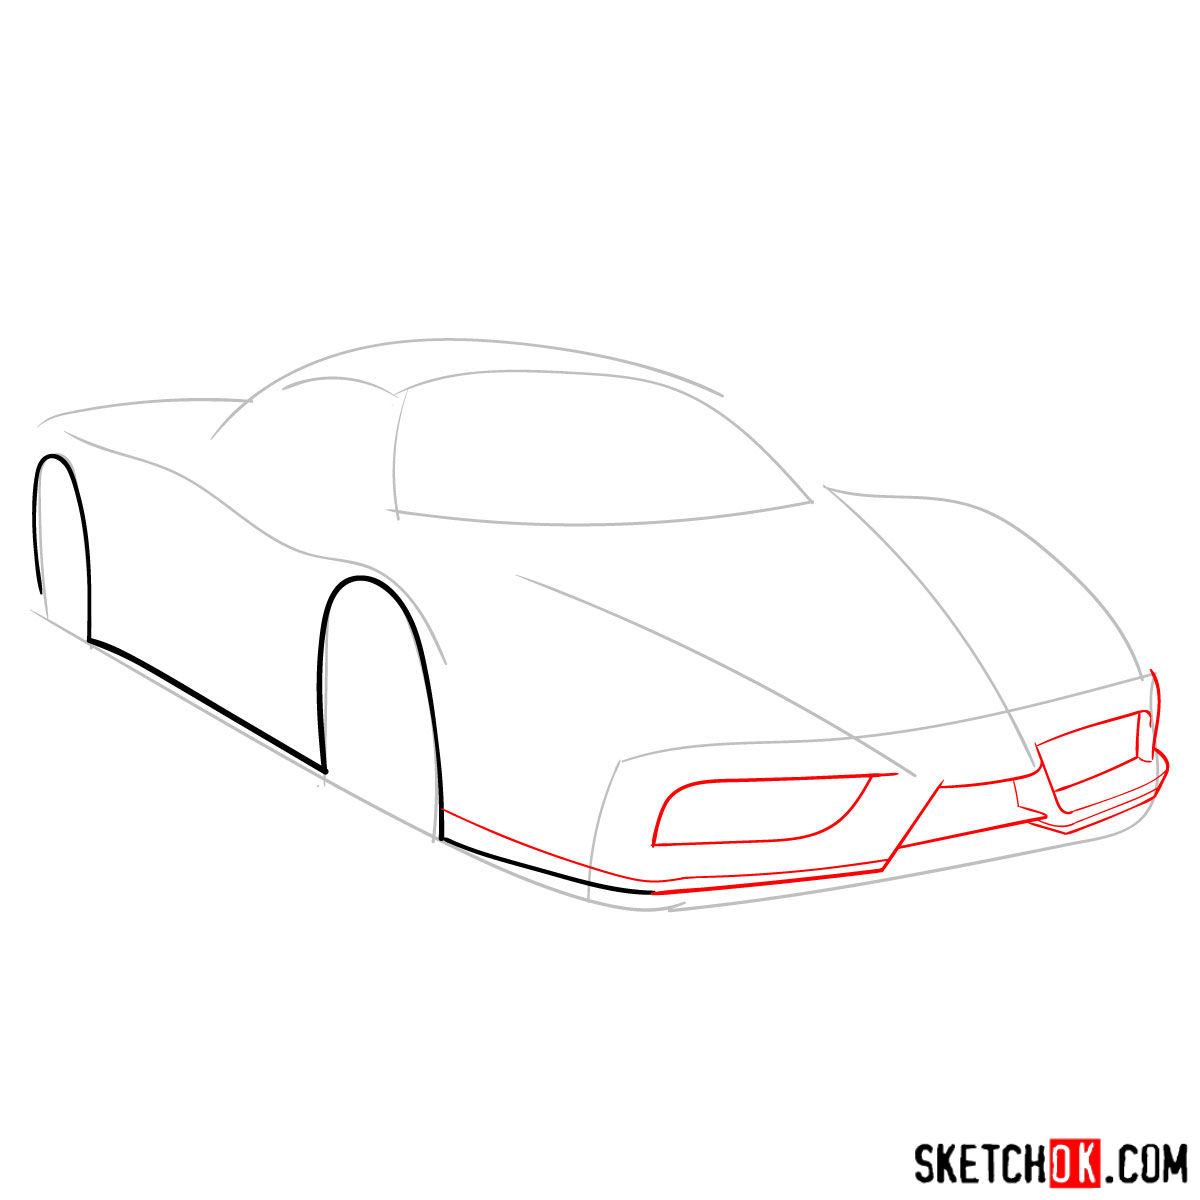 How to draw Ferrari Enzo legendary supercar - step 03